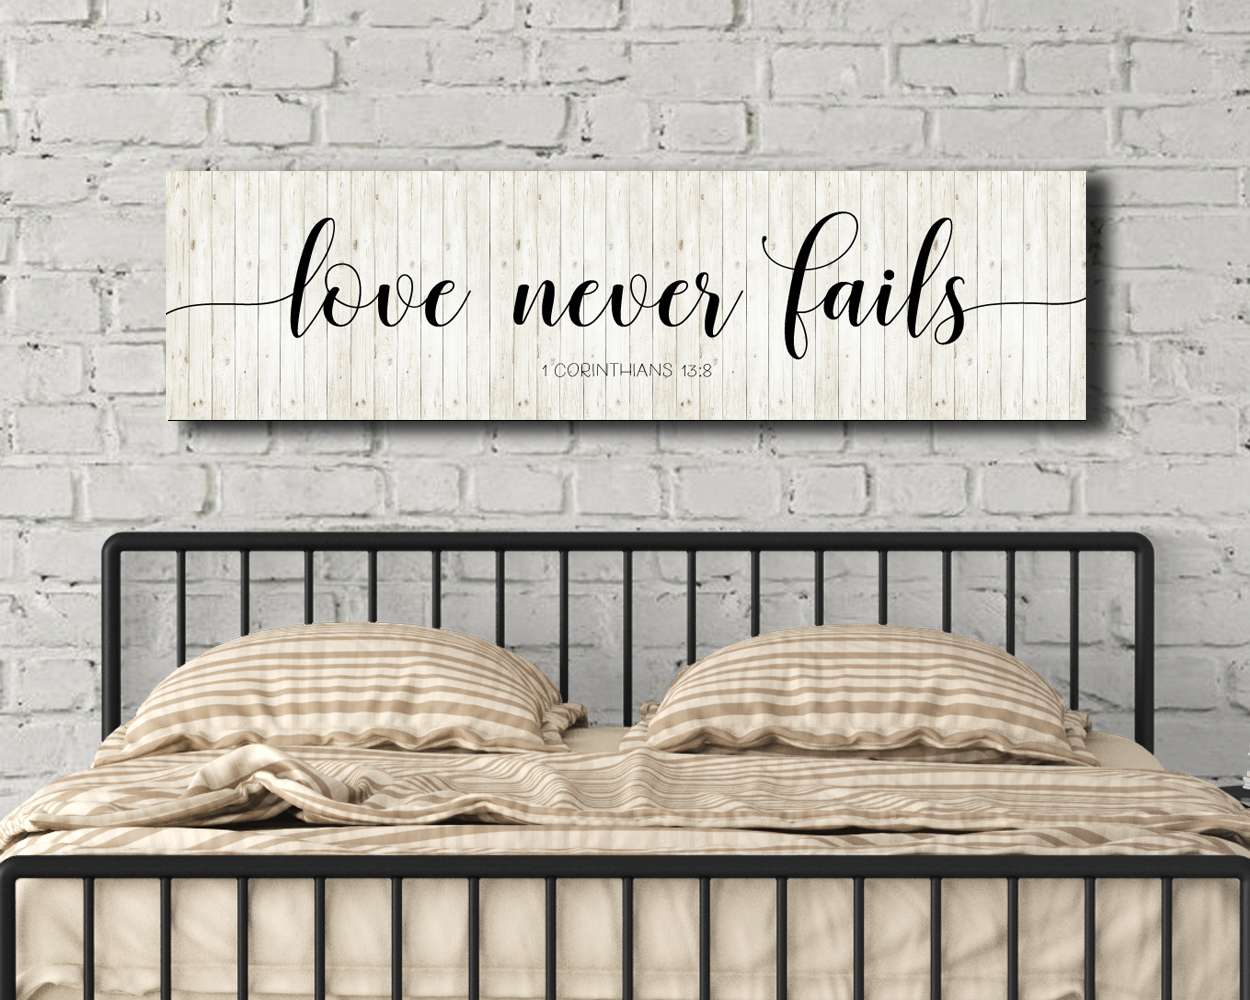 Love never fails pan 2.jpg